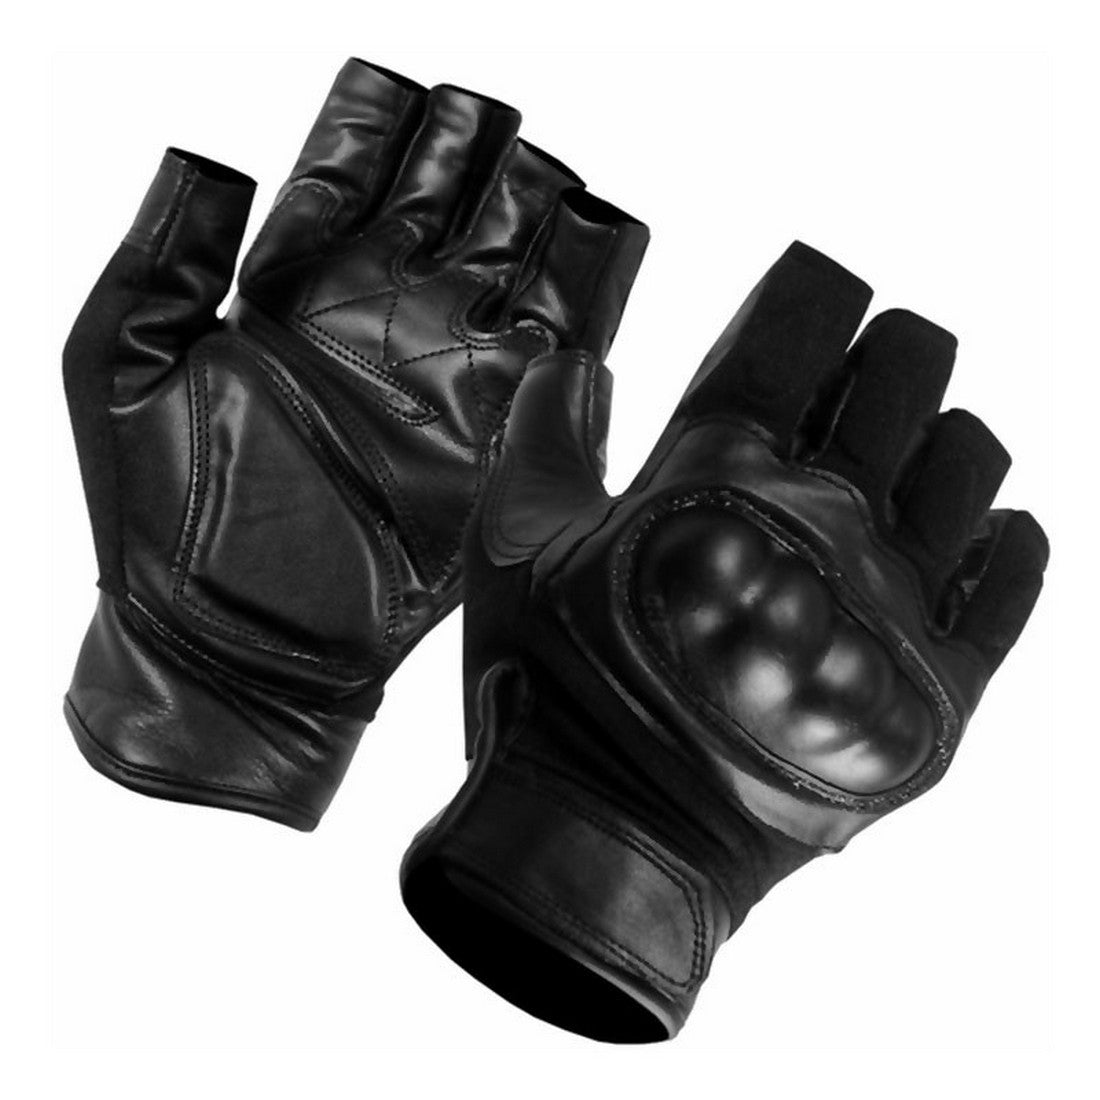 SecPro Superior Service Touch Hard Knuckle Leather Gloves